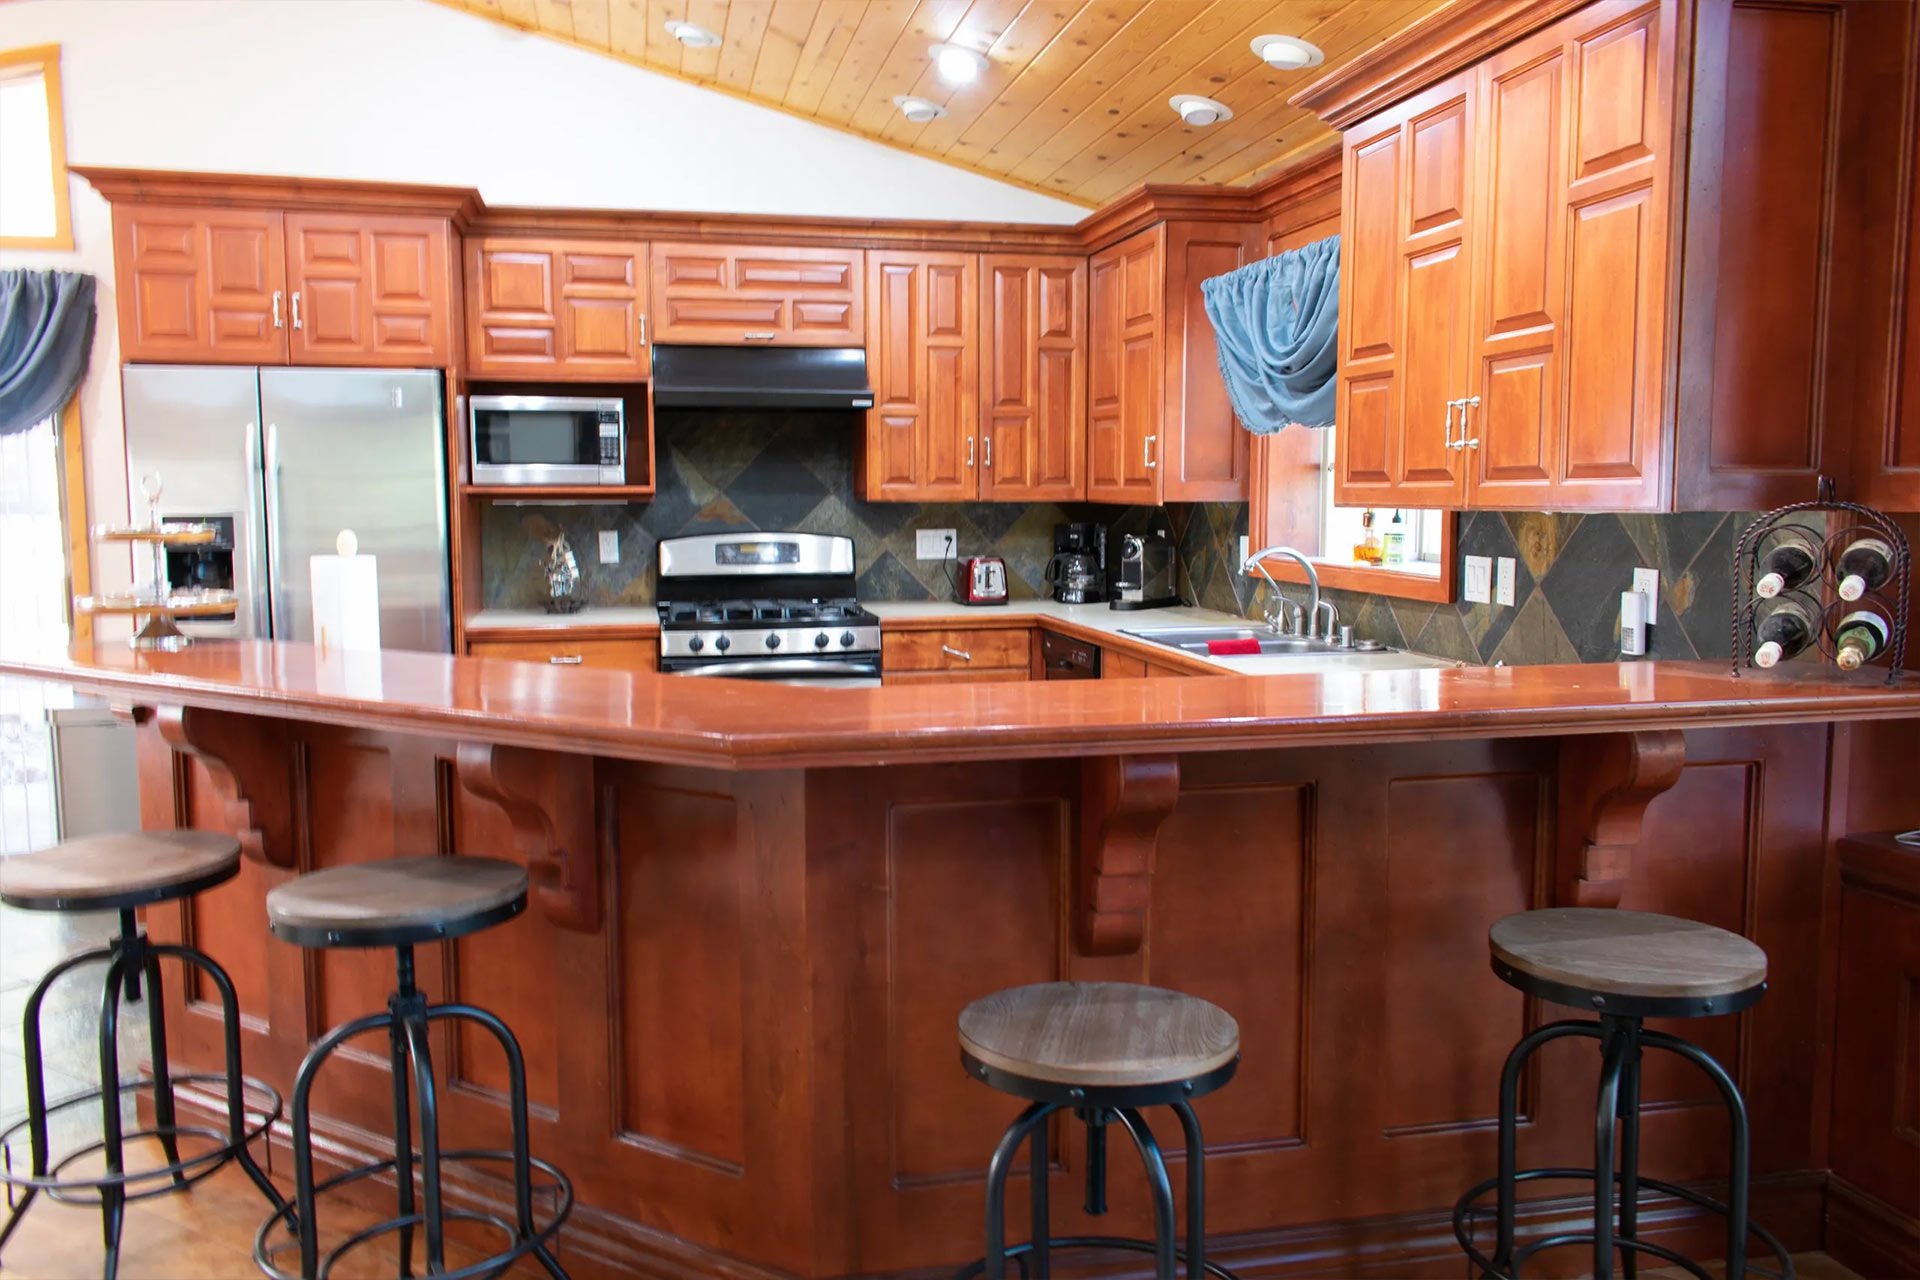 kitchen in the residence with bar-style seating